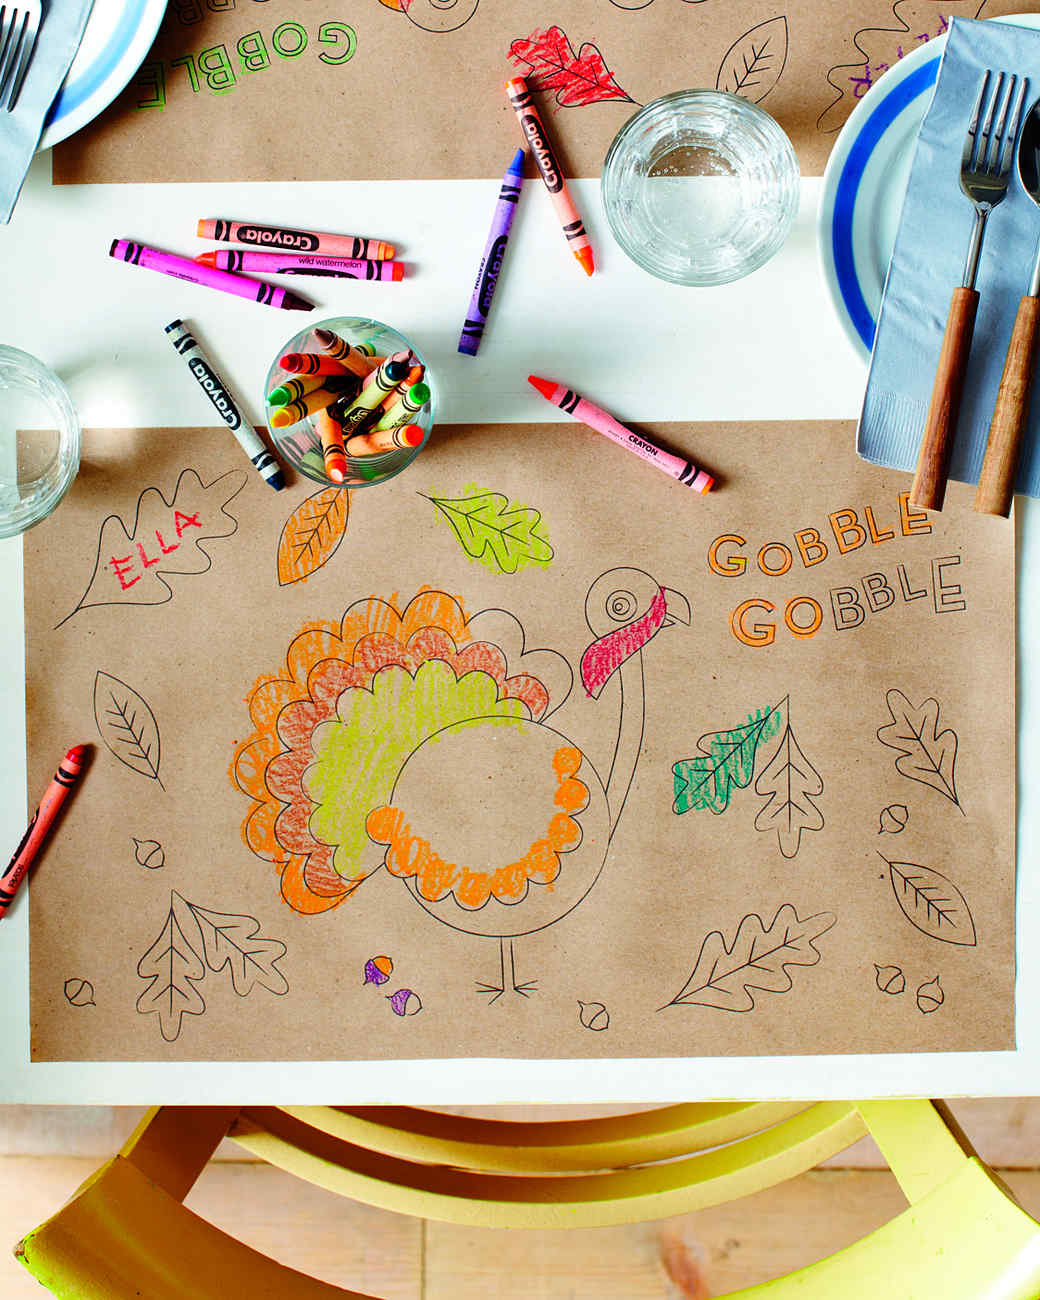 good-things-placemat-mld107720.jpg